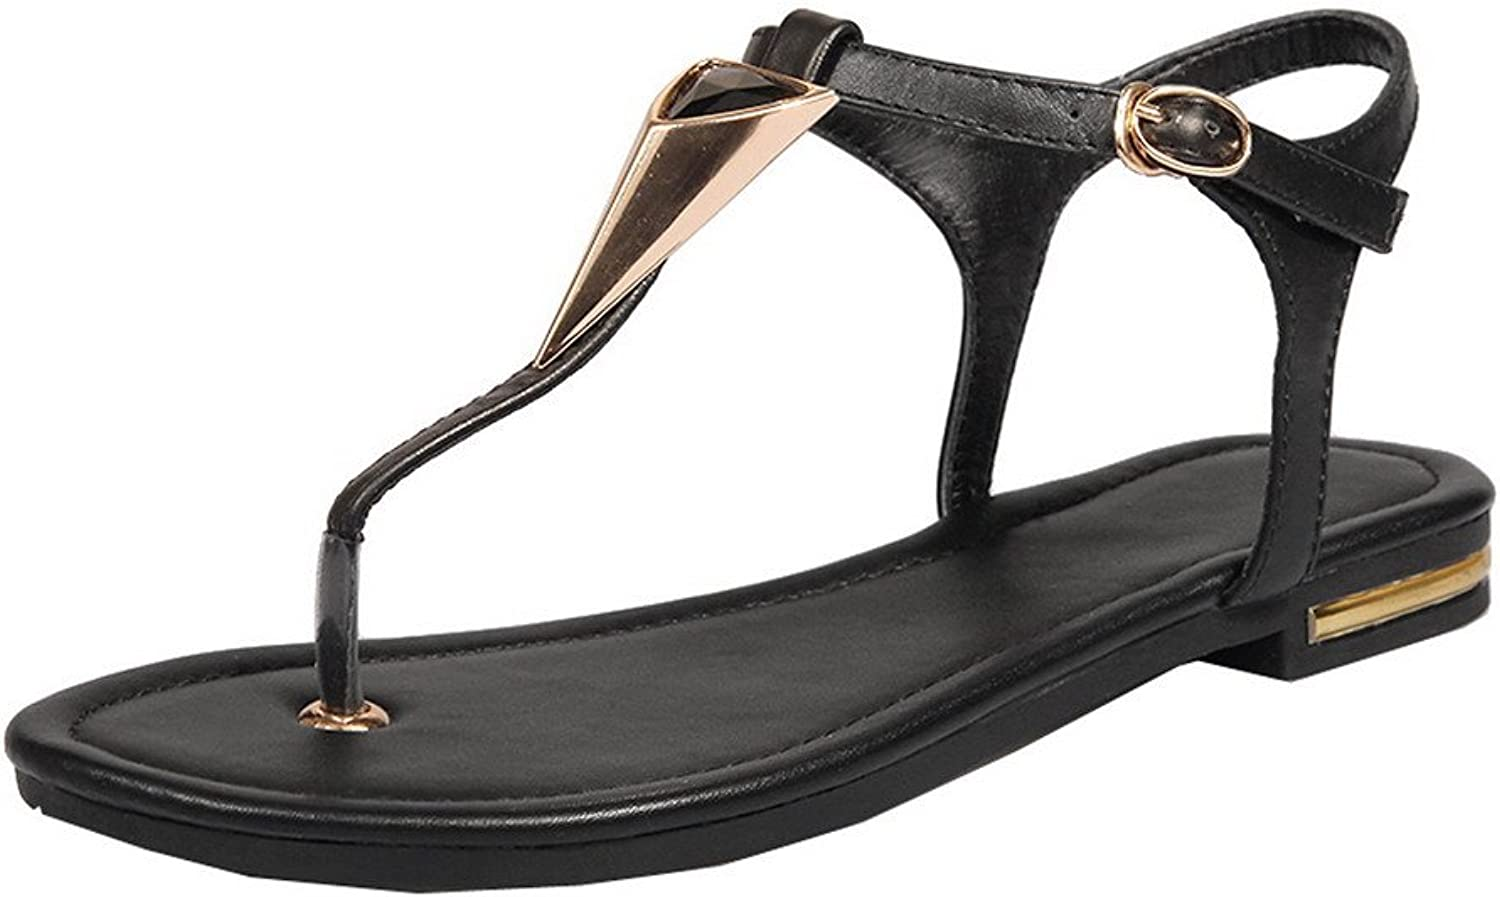 WeiPoot Women's Pu Low-Heels Open-Toe Buckle Sandals, EGHLH006655